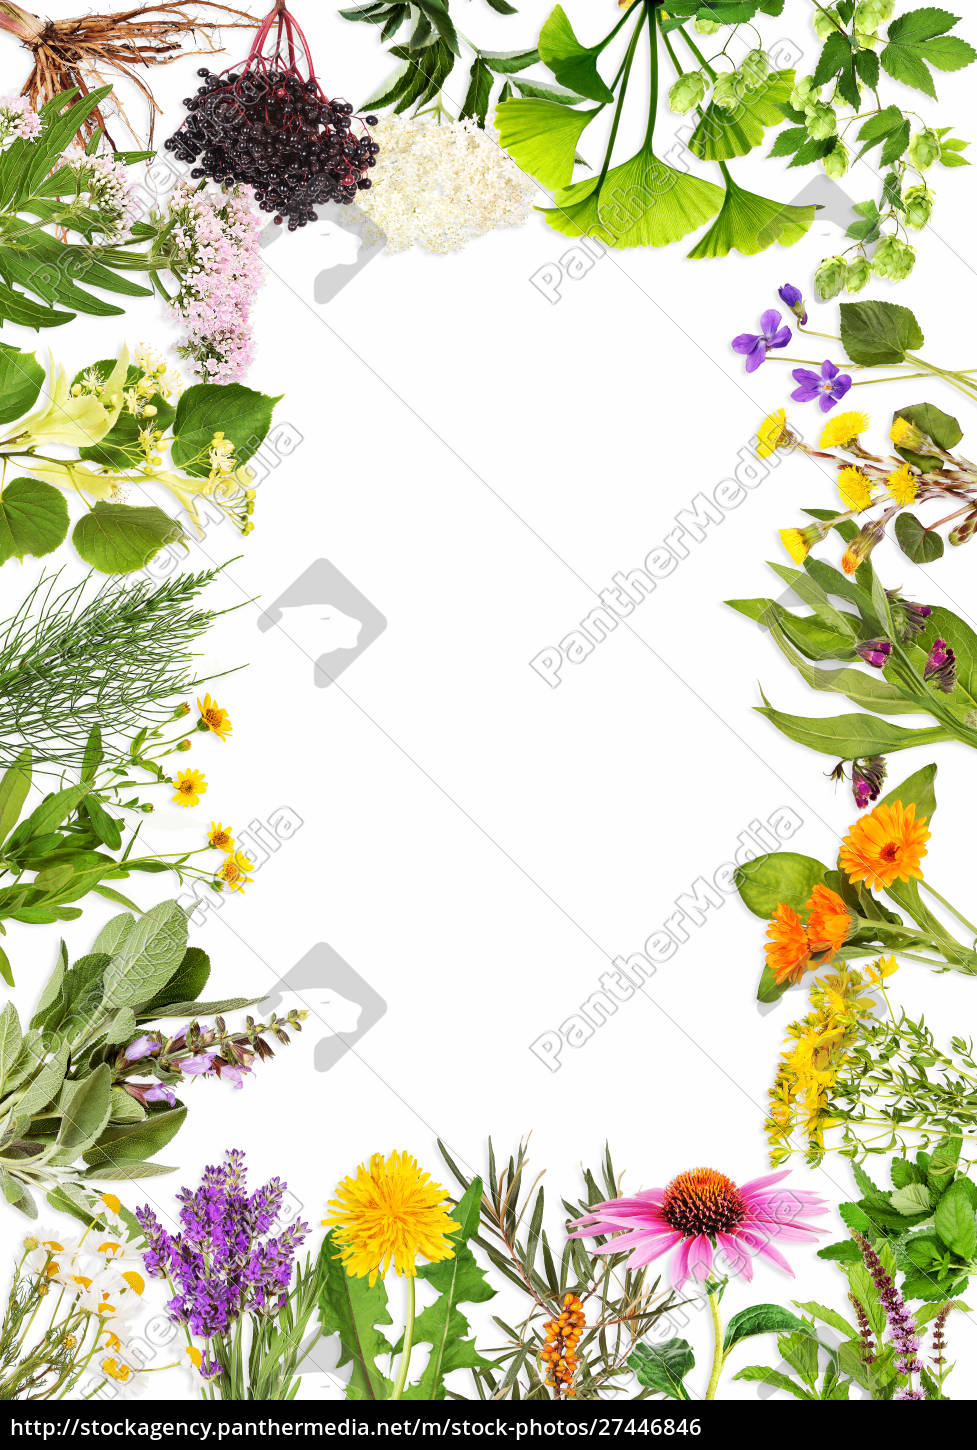 frame, with, the, main, medicinal, plants - 27446846